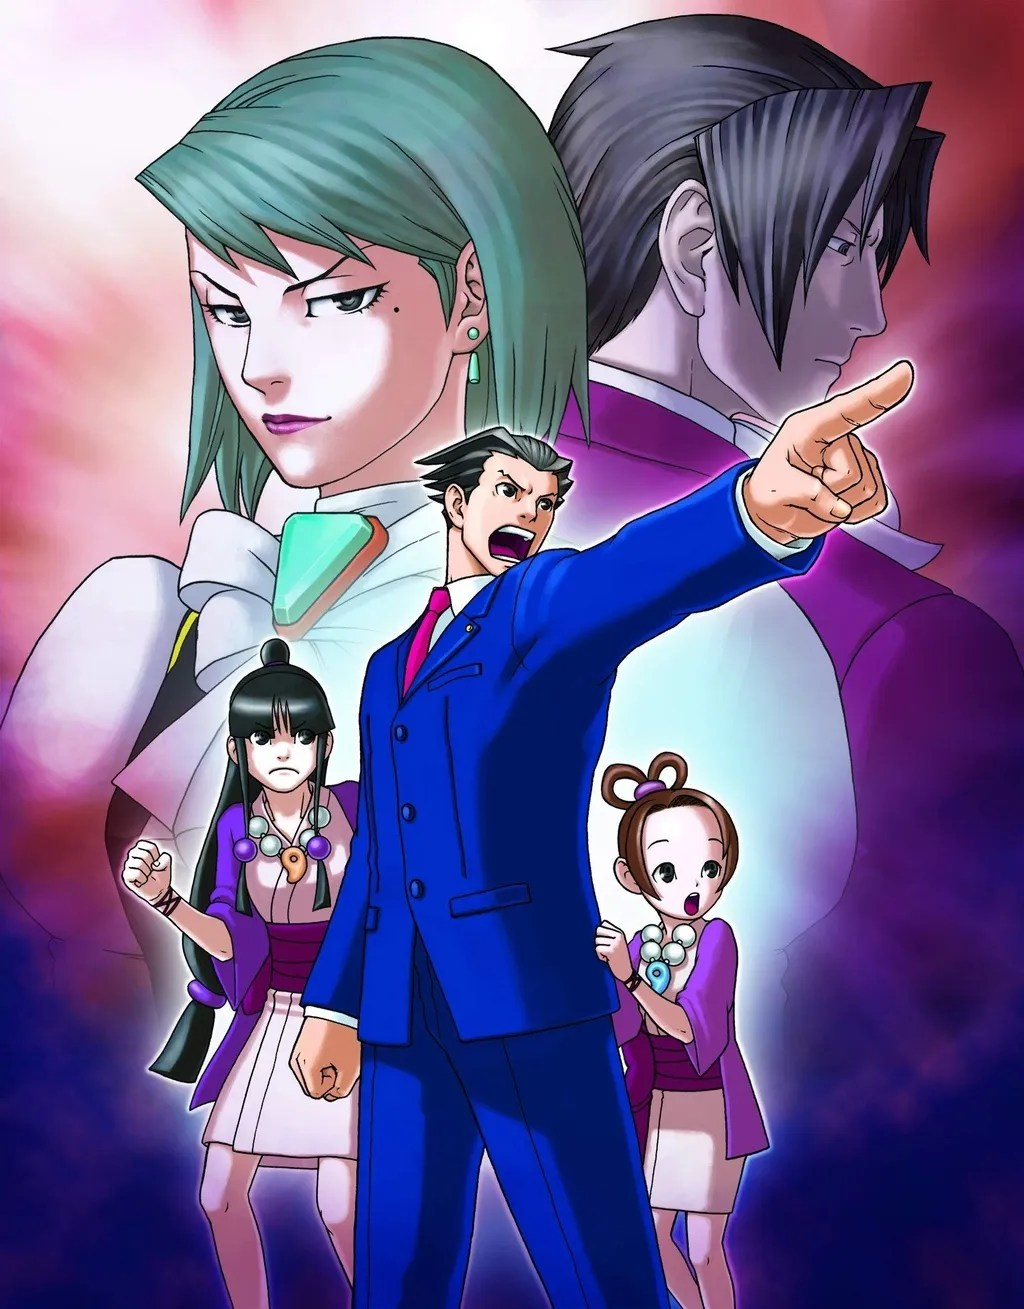 How To Make Live Wallpaper Work Iphone X Phoenix Wright Ace Attorney Visual Novel Tv Tropes